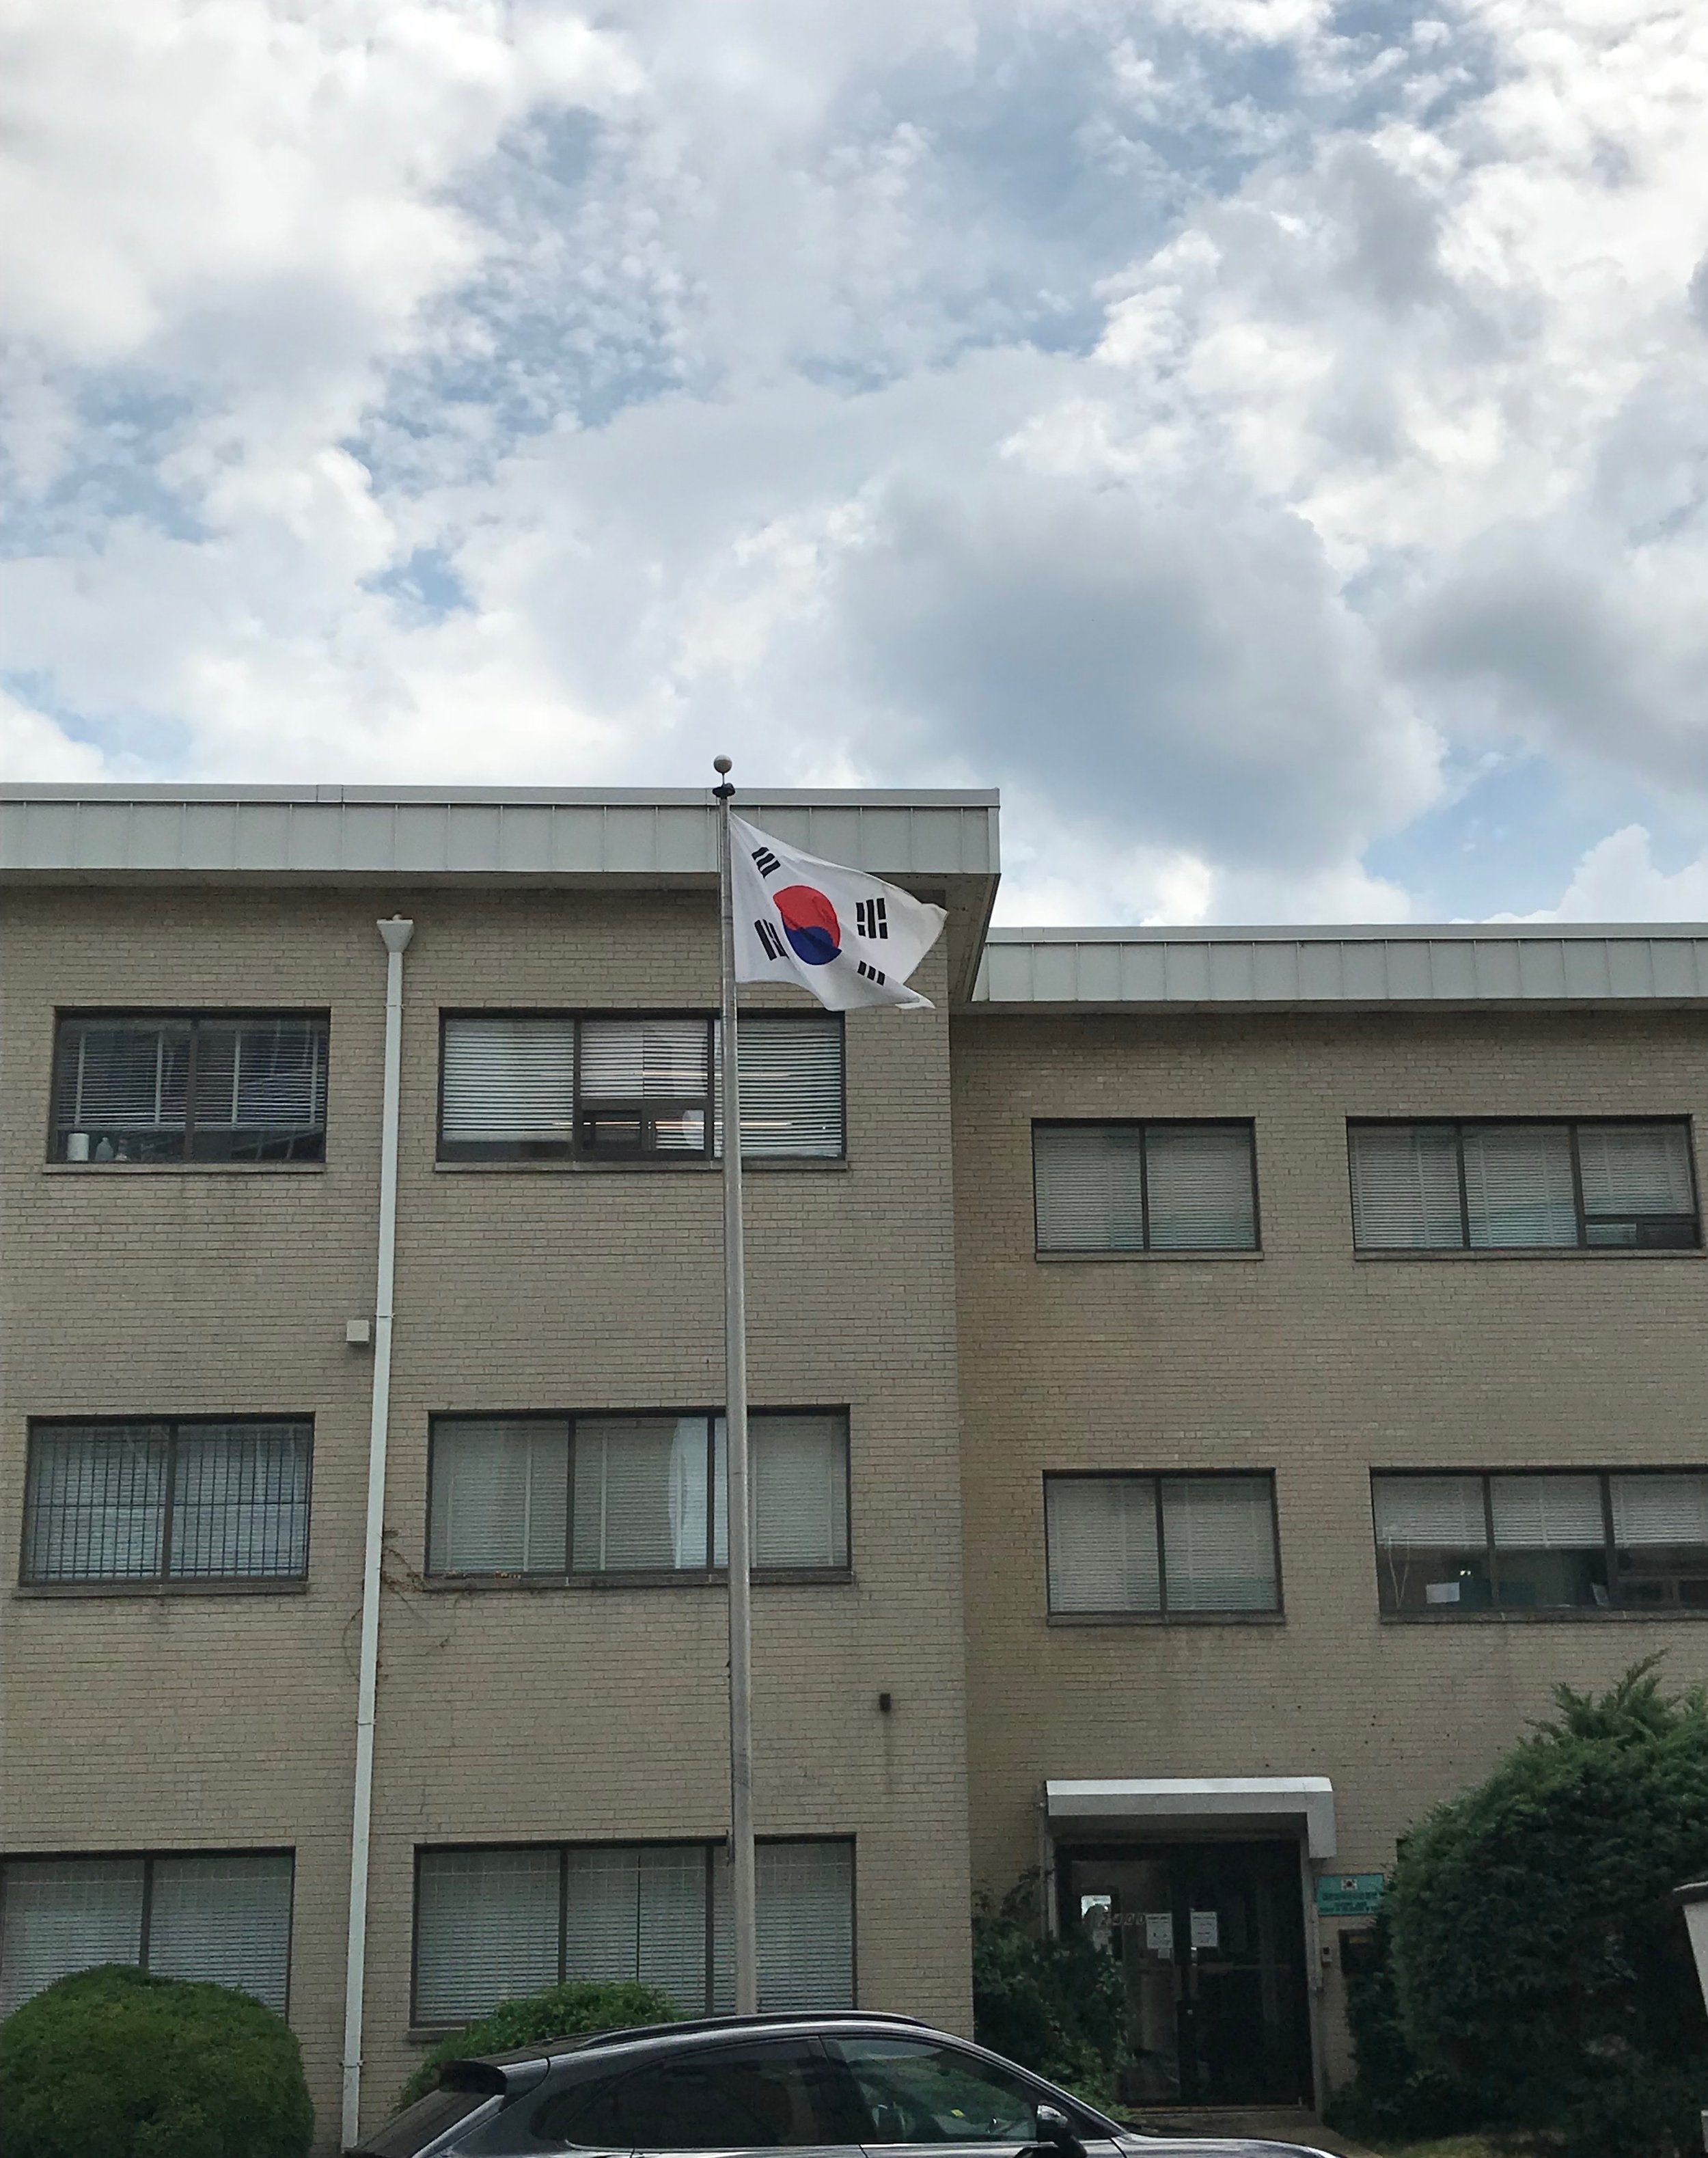 The Embassy of the Republic of Korea in Arlington, VA.